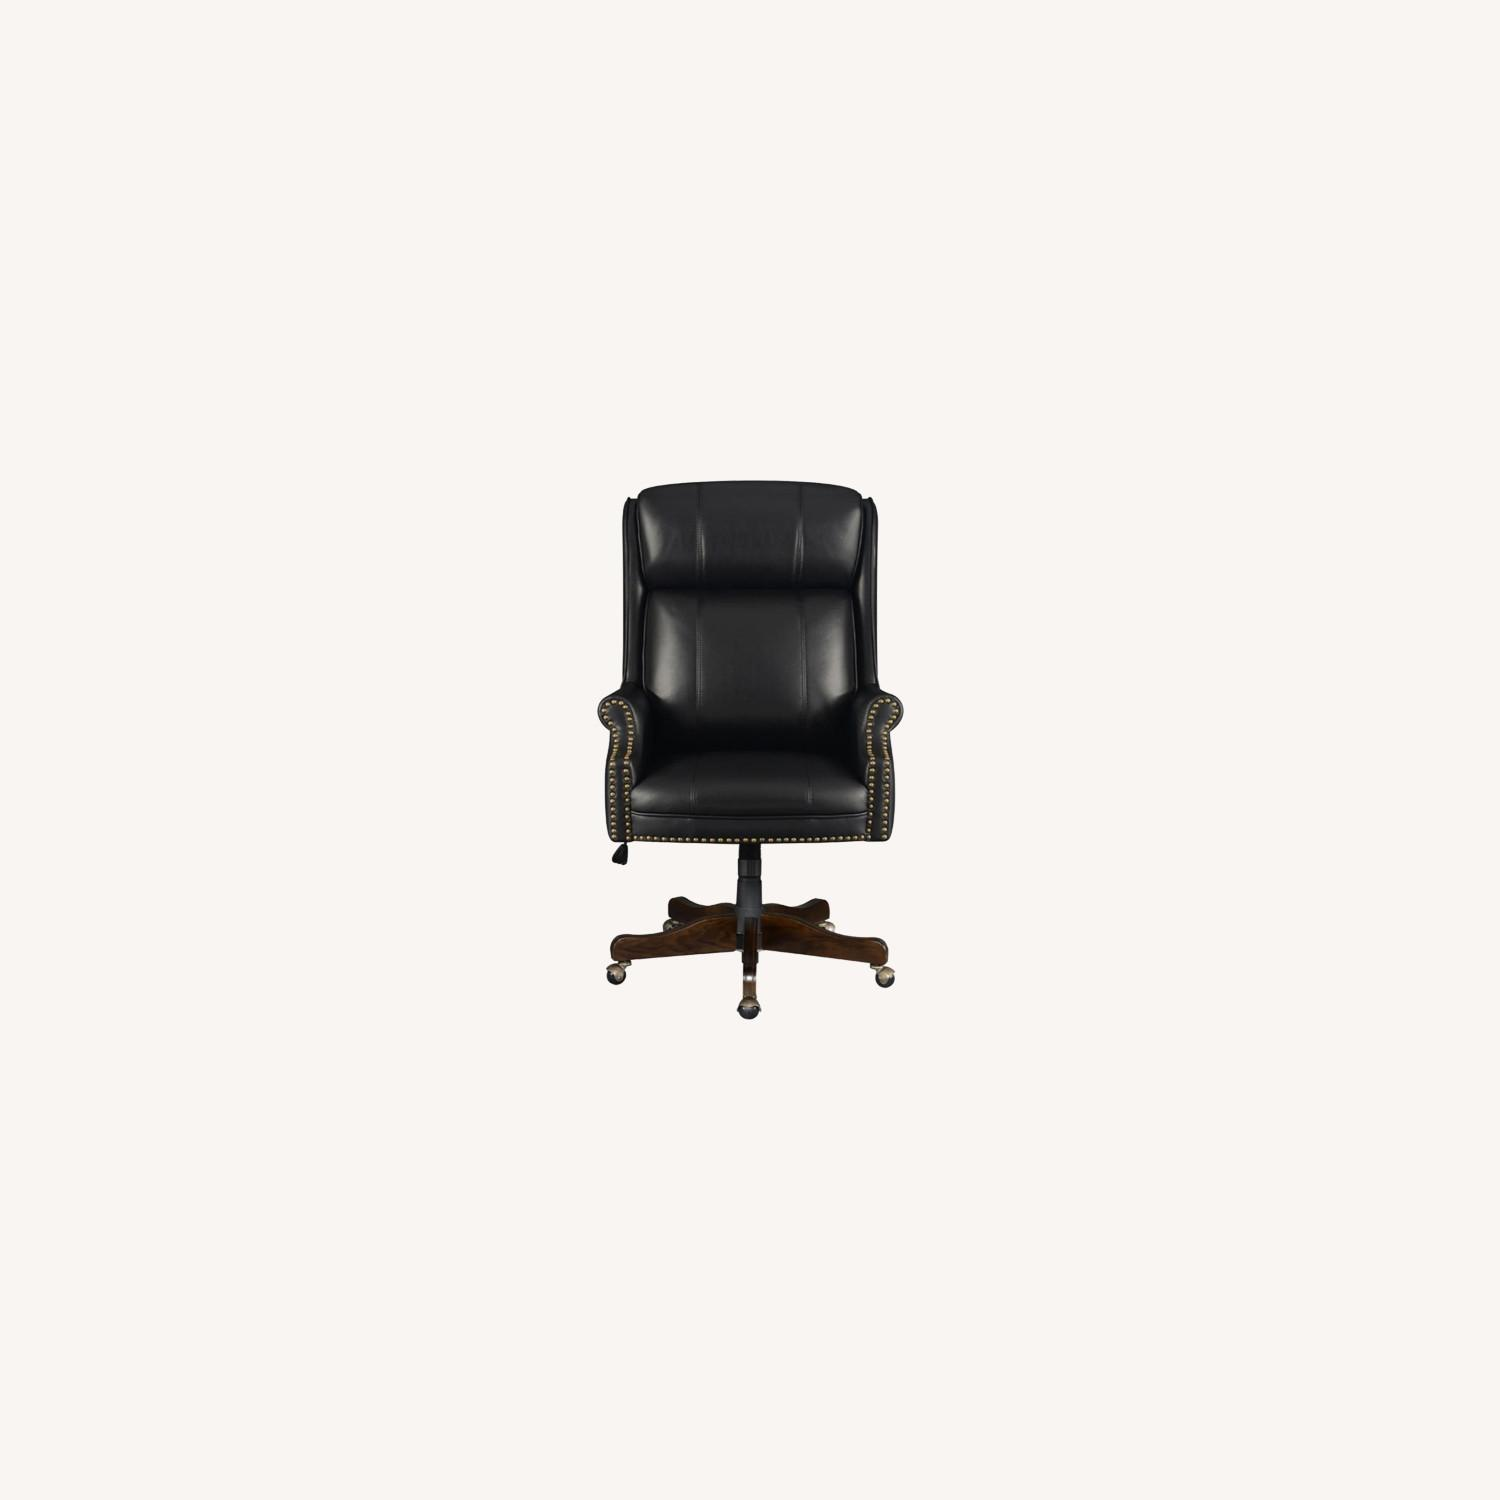 Office Chair Upholstered In Black Leatherette - image-5